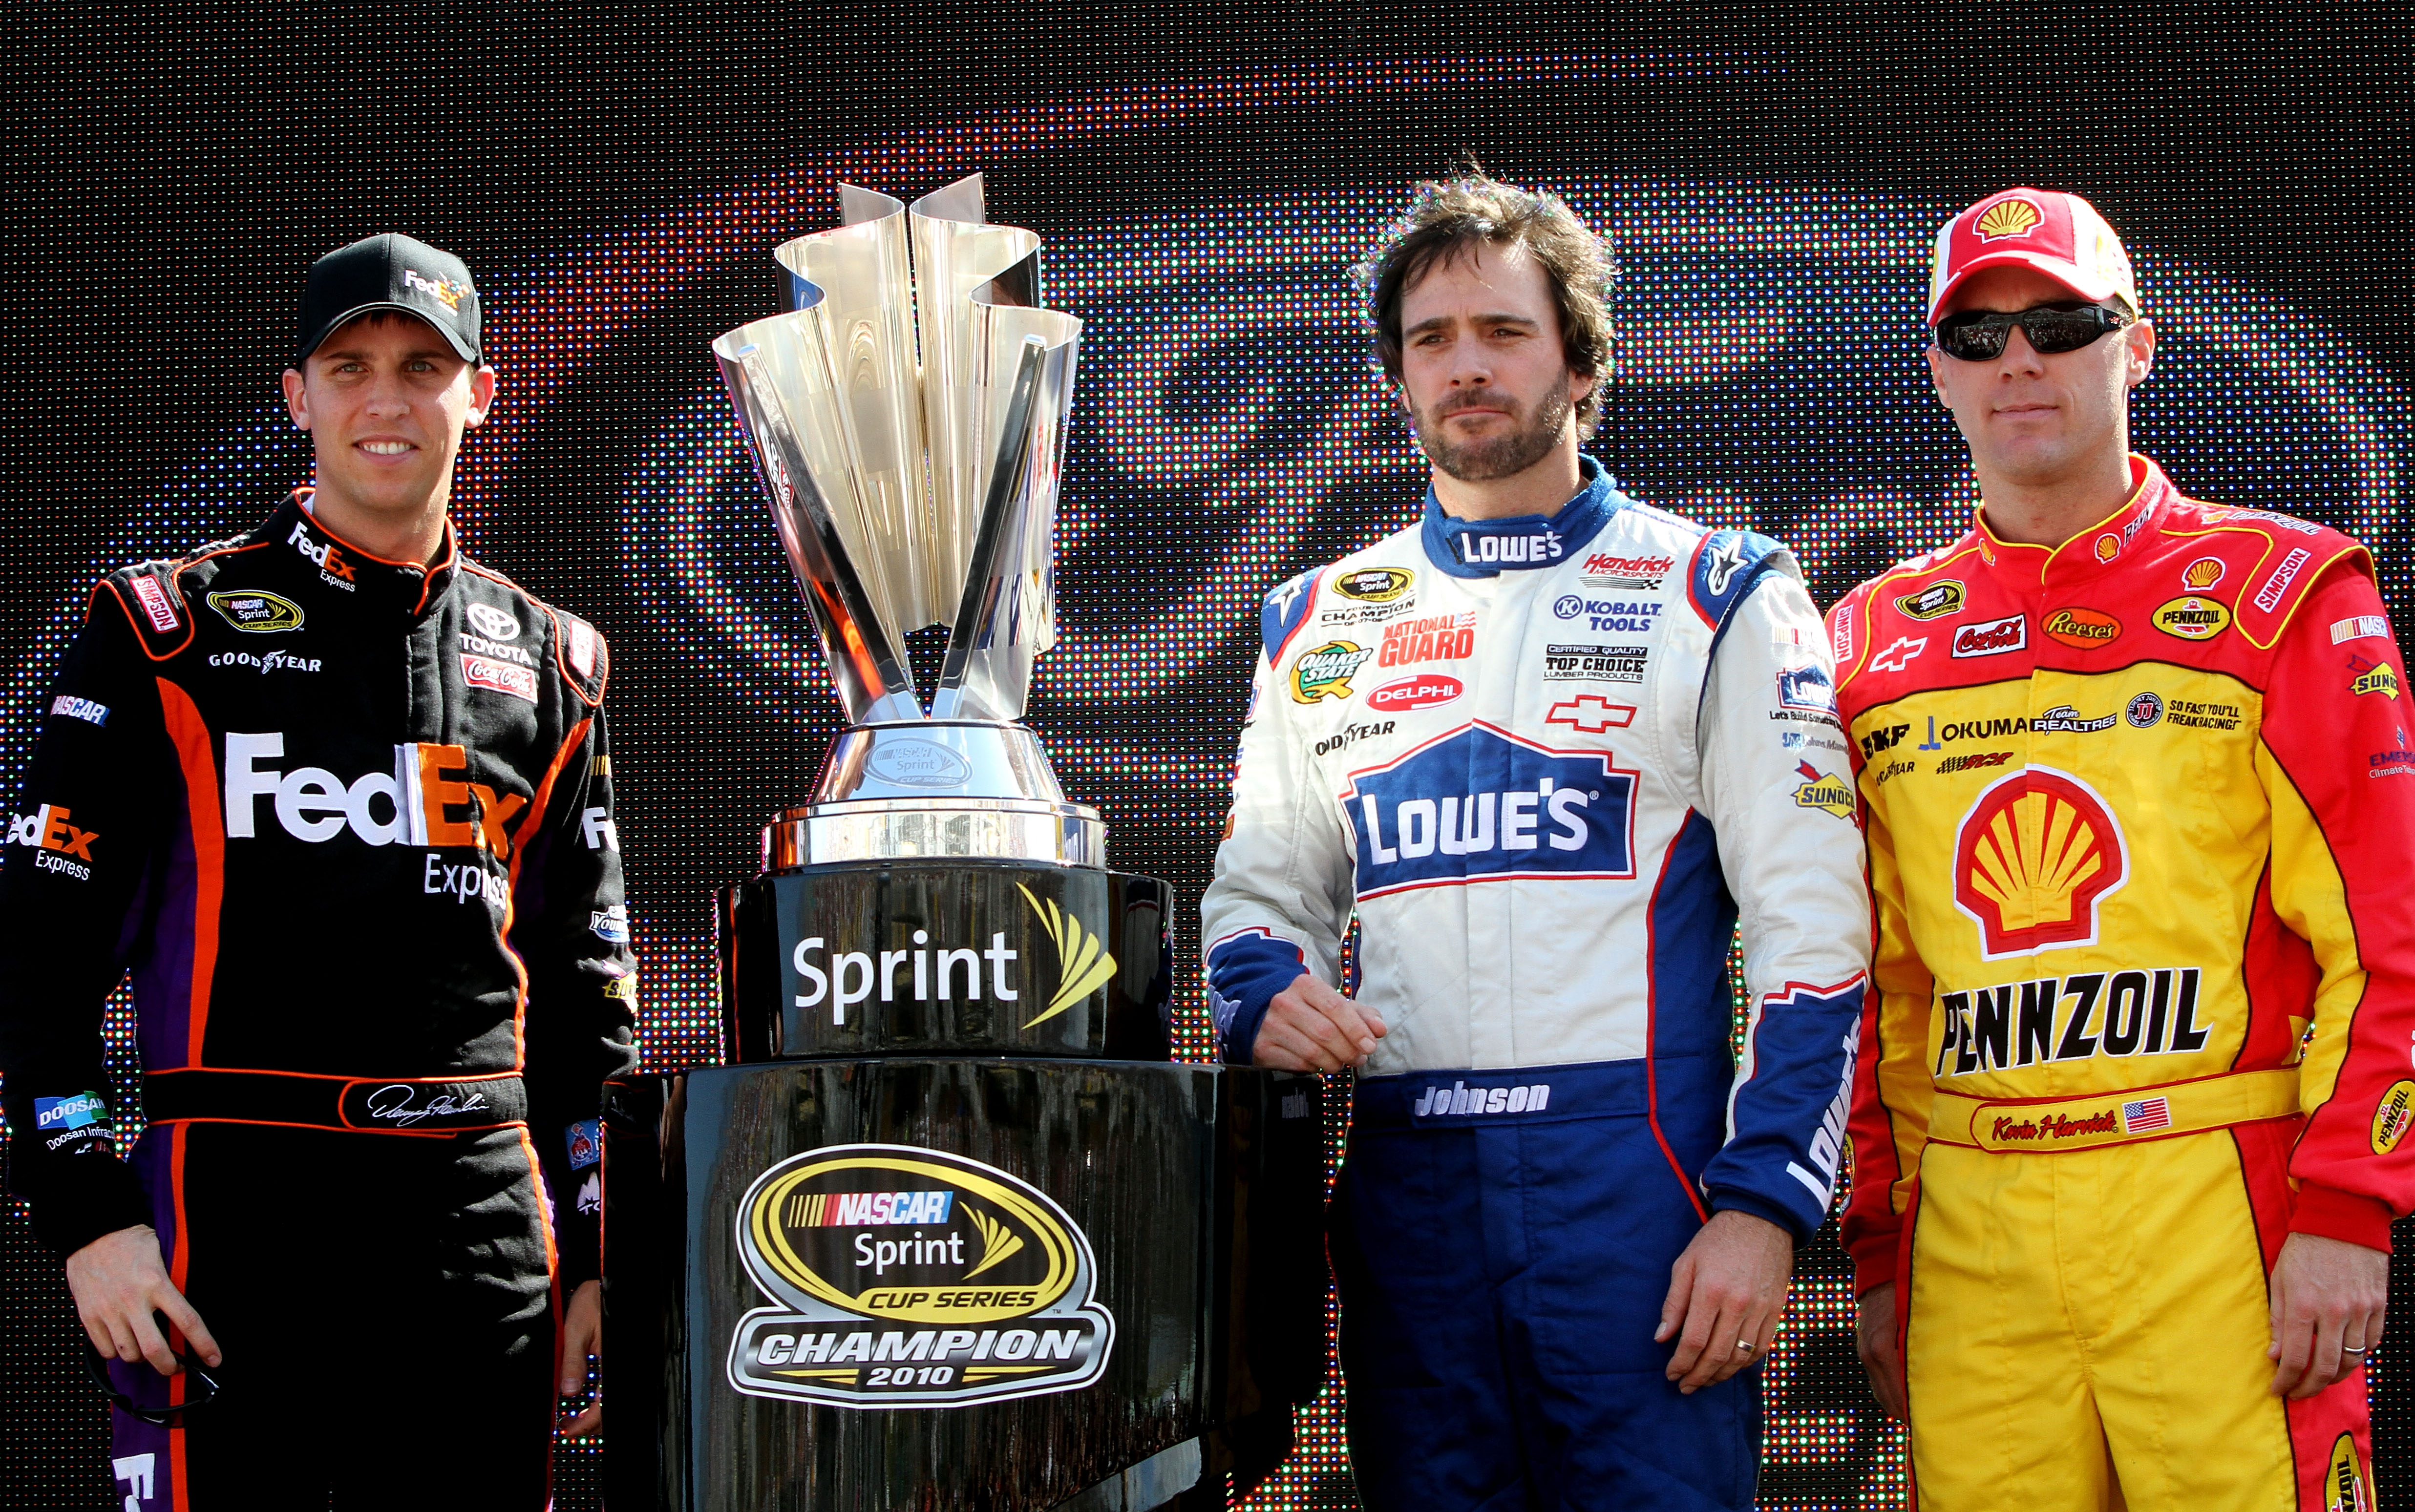 HOMESTEAD, FL - NOVEMBER 21:  (L-R) Denny Hamlin, driver of the #11 FedEx Toyota, stands next to the Sprint Cup trophy with Jimmie Johnson, driver of the #48 Lowe's Chevrolet, and Kevin Harvick, driver of the #29 Shell/Pennzoil Chevrolet, during the NASCA